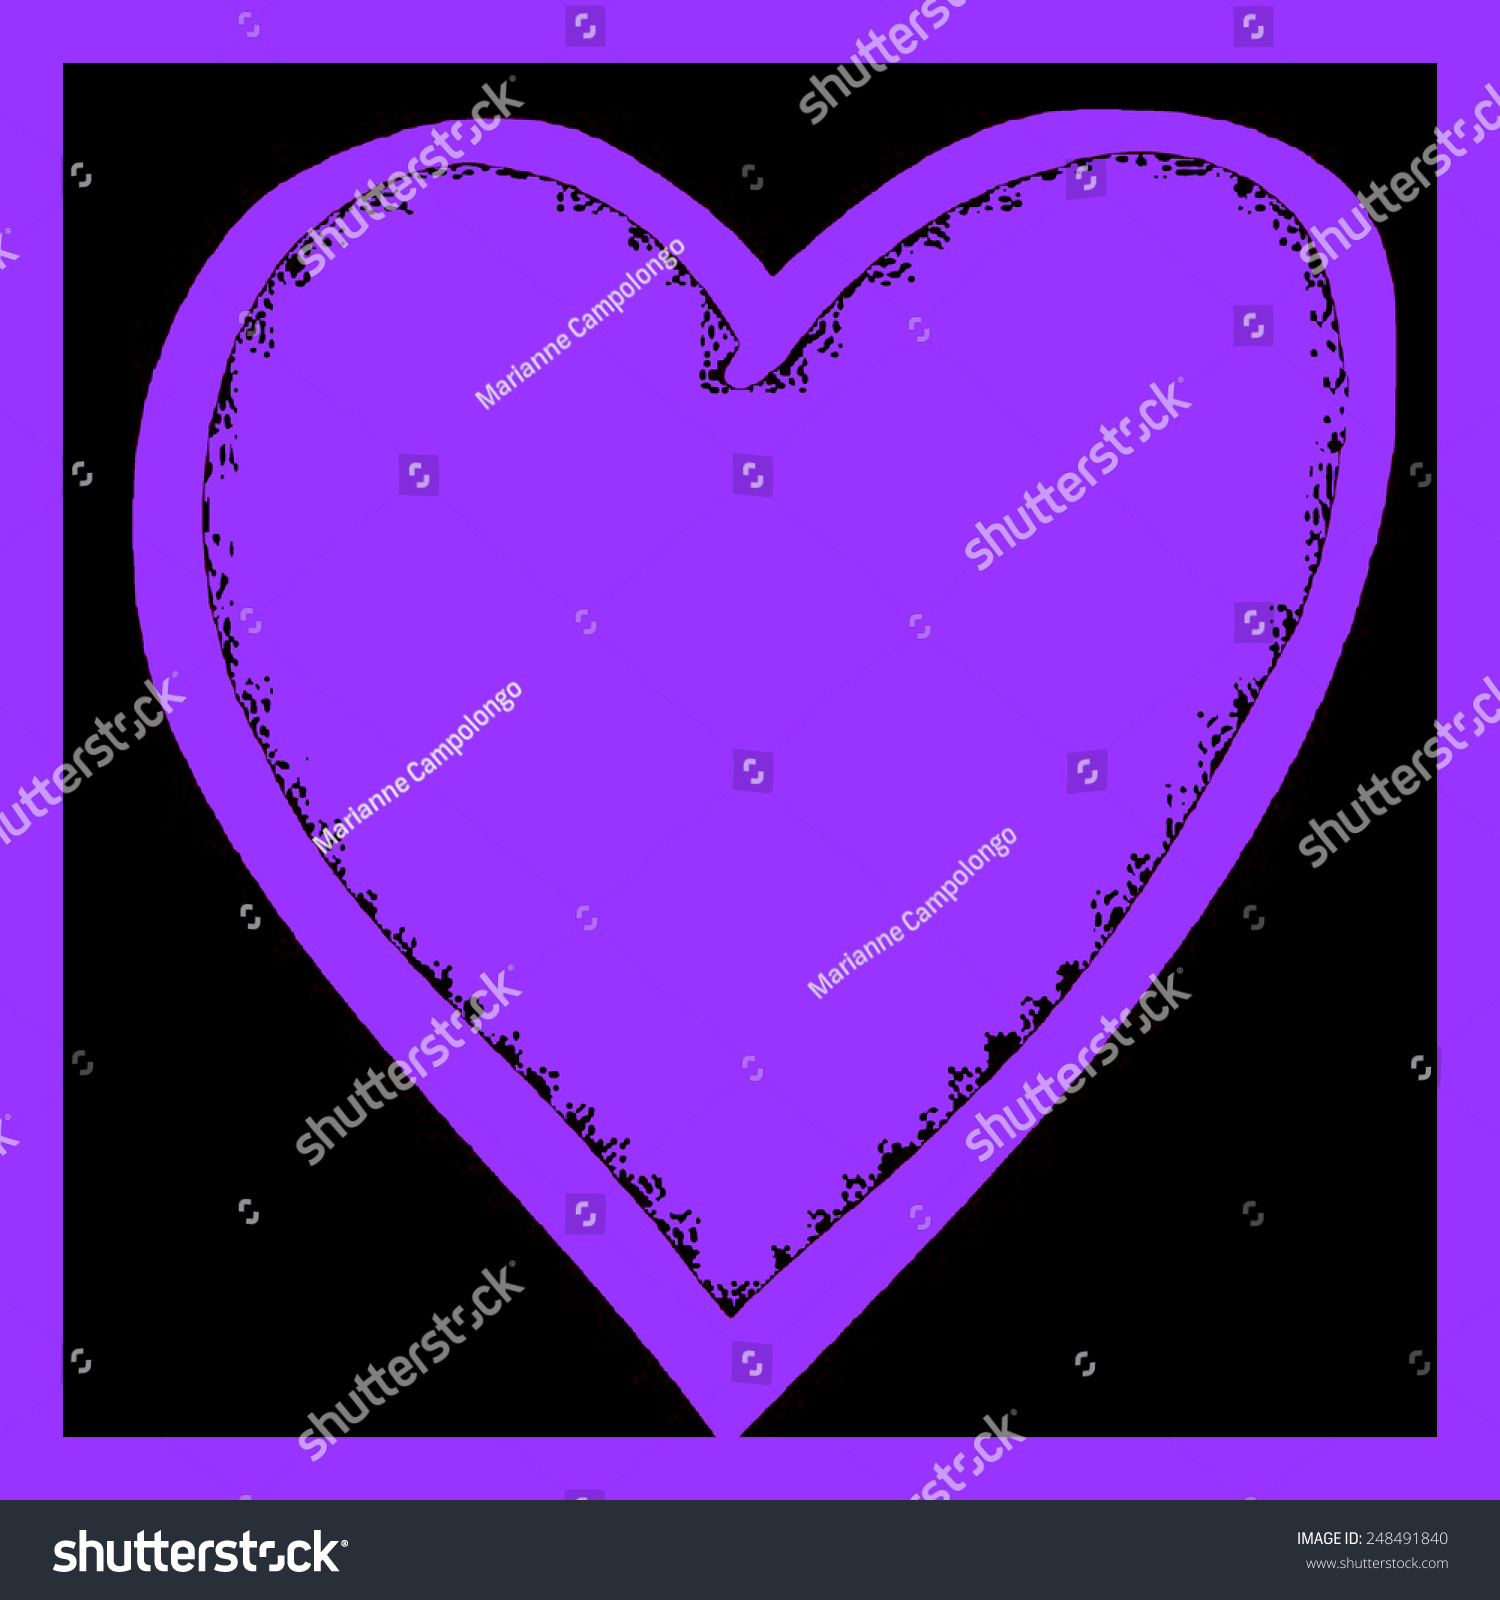 Purple heart digital illustration valentines day stock purple heart digital illustration valentines day abstract background symbol of love romance romantic series with copy buycottarizona